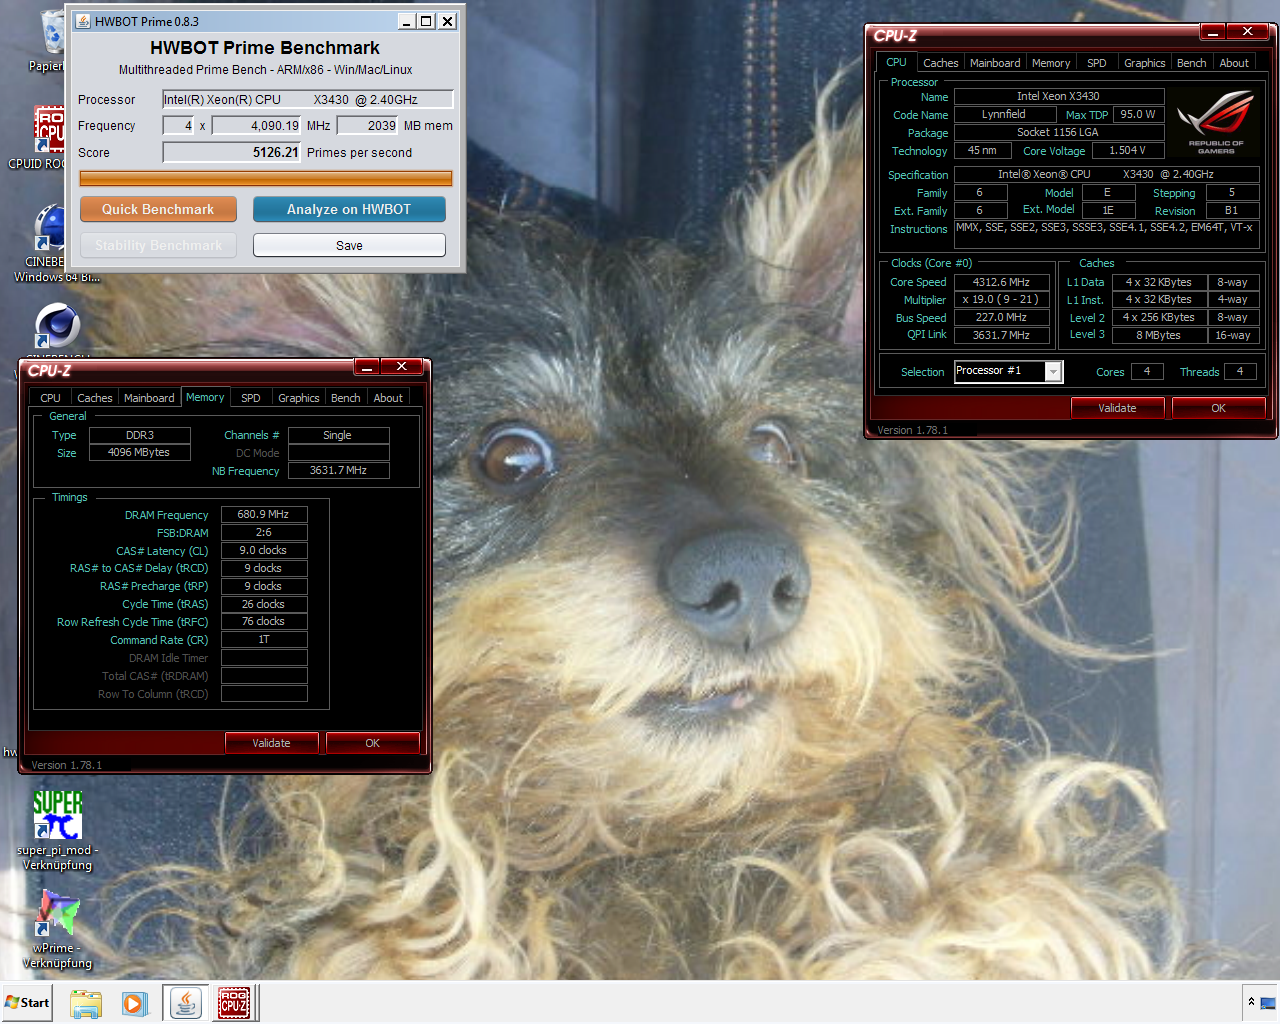 UE50`s HWBOT Prime score: 5126 21 pps with a Xeon X3430